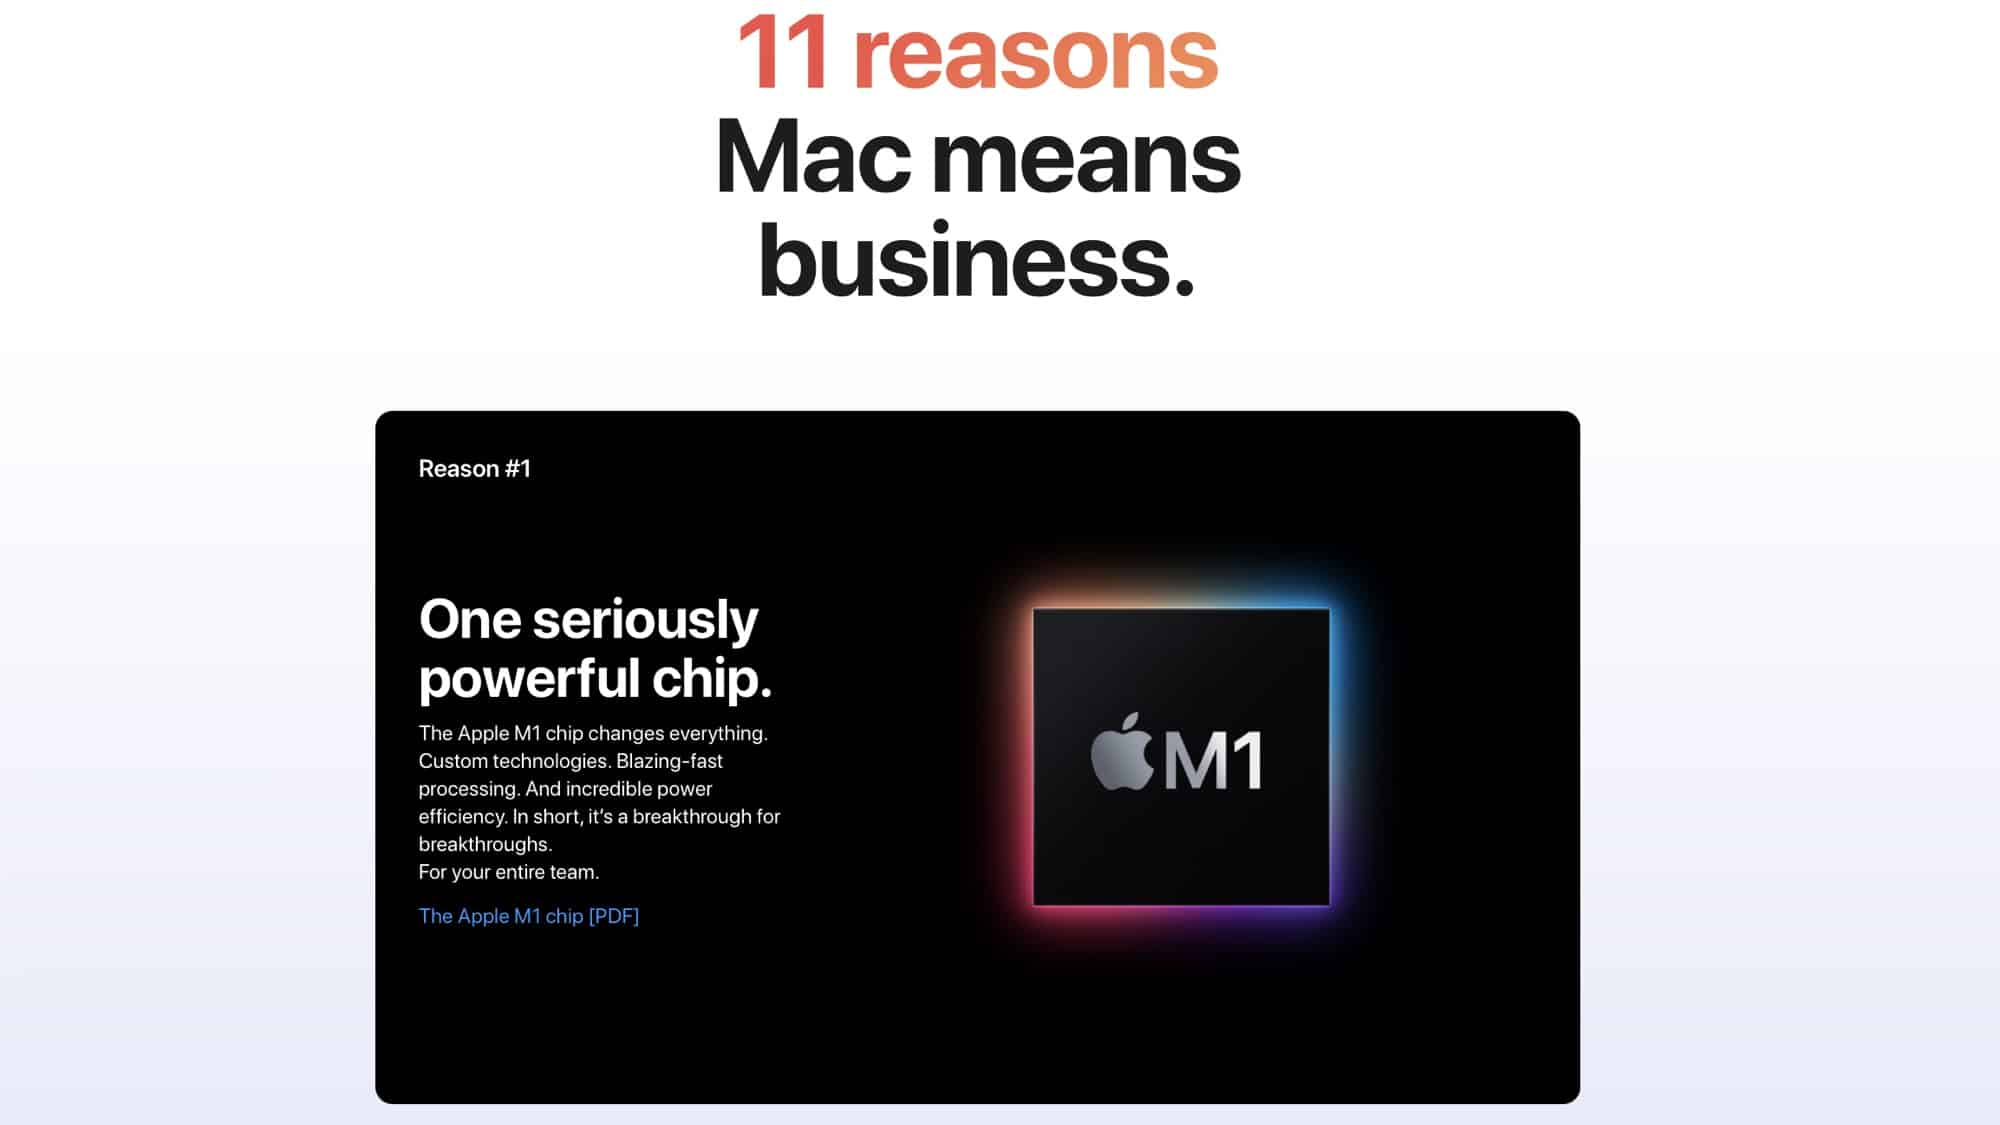 Apple details reasons why businesses should use Mac